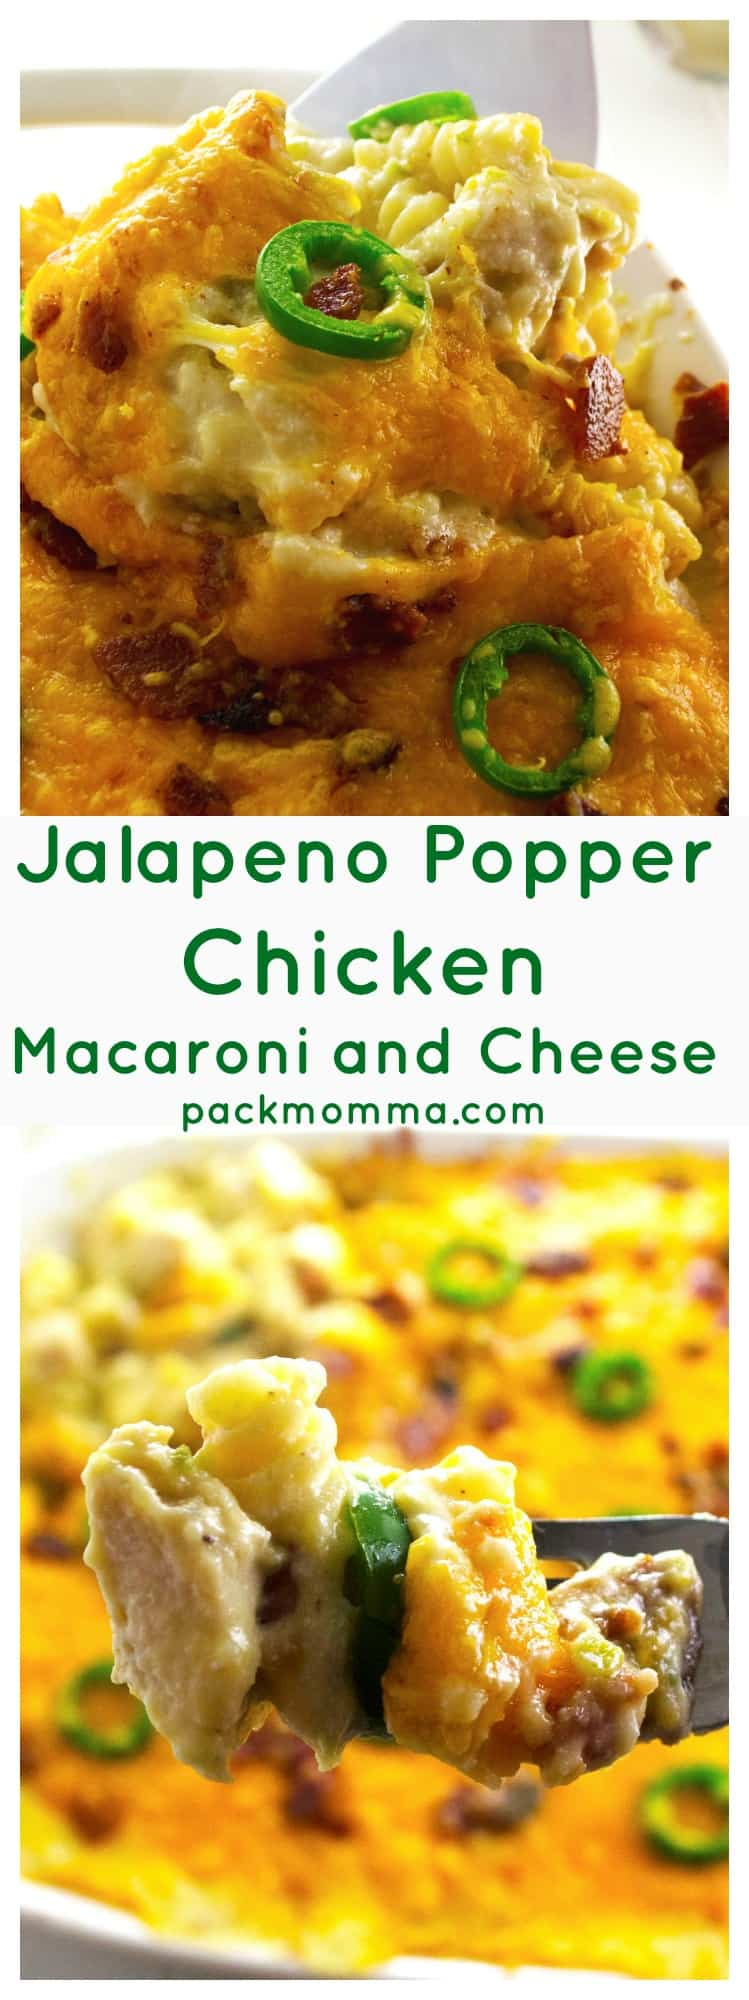 Jalapeno Popper Chicken Macaroni and Cheese | Jalapeno Popper Chicken Macaroni and Cheese is the perfect combination of spicy jalapeno peppers, chicken and rich, creamy macaroni and cheese. Perfect comfort food! | Pack Momma | https://www.packmomma.com